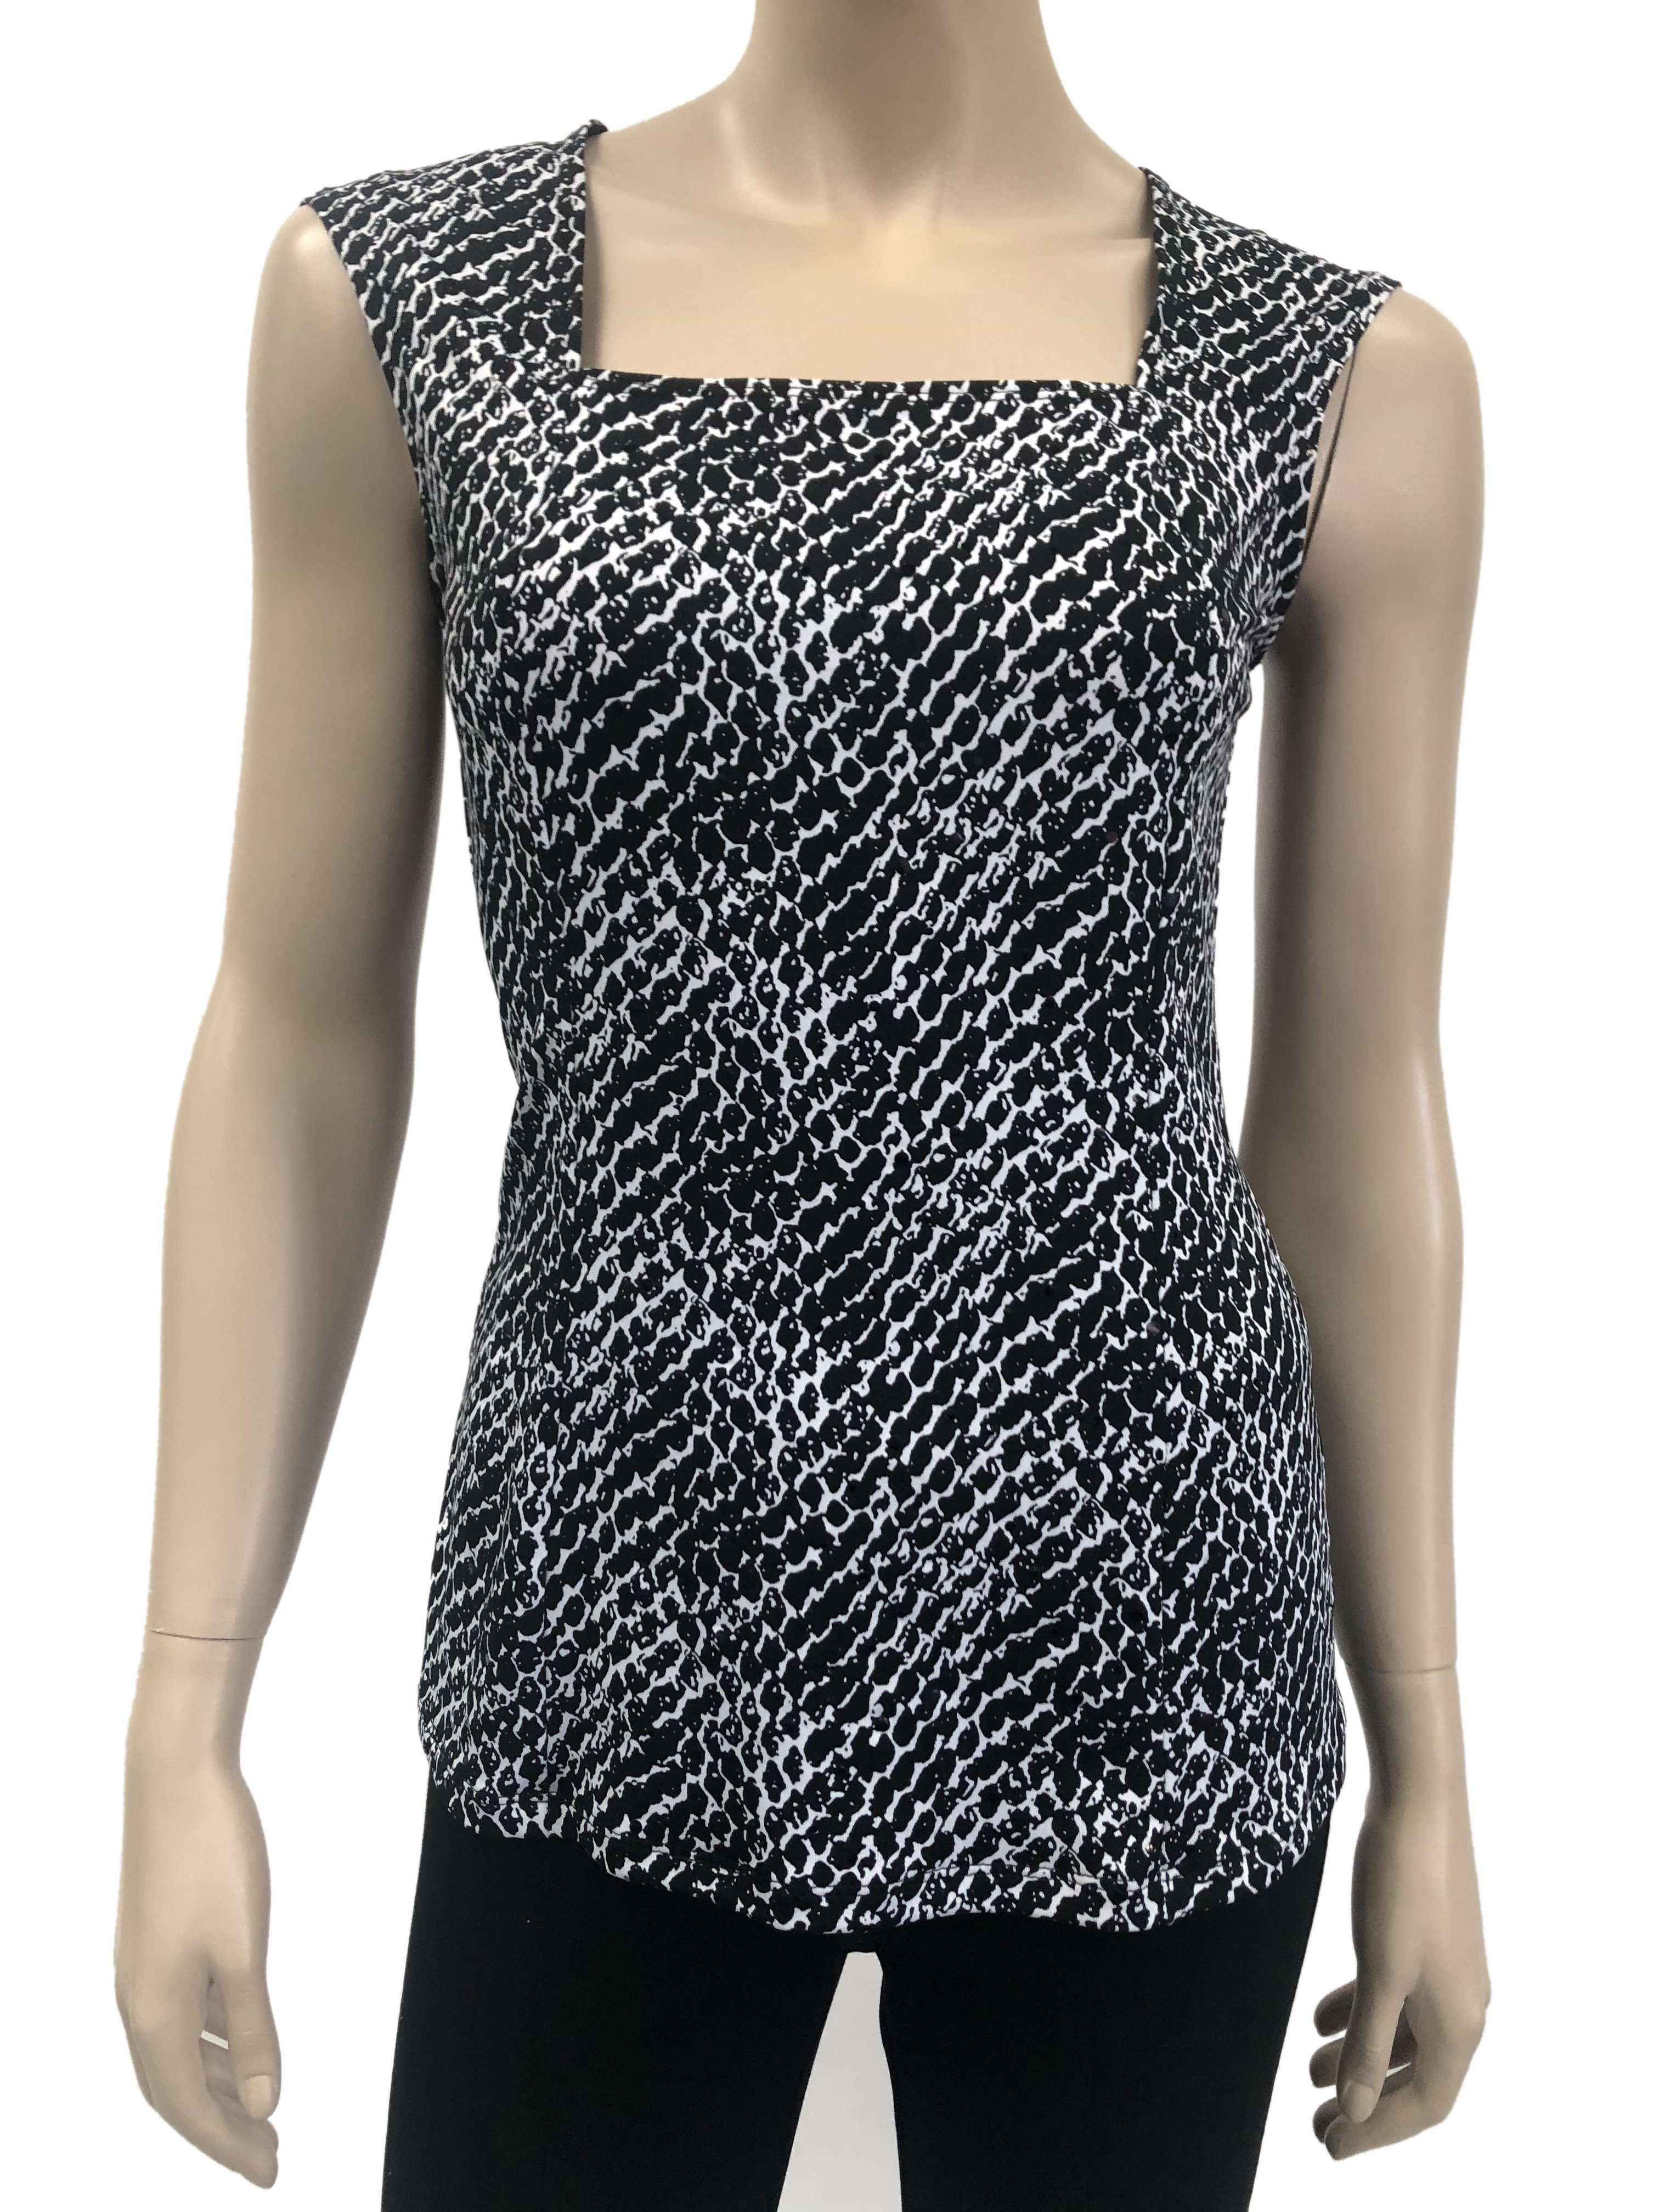 Womens Black And White Glitter Camisole - Yvonne Marie